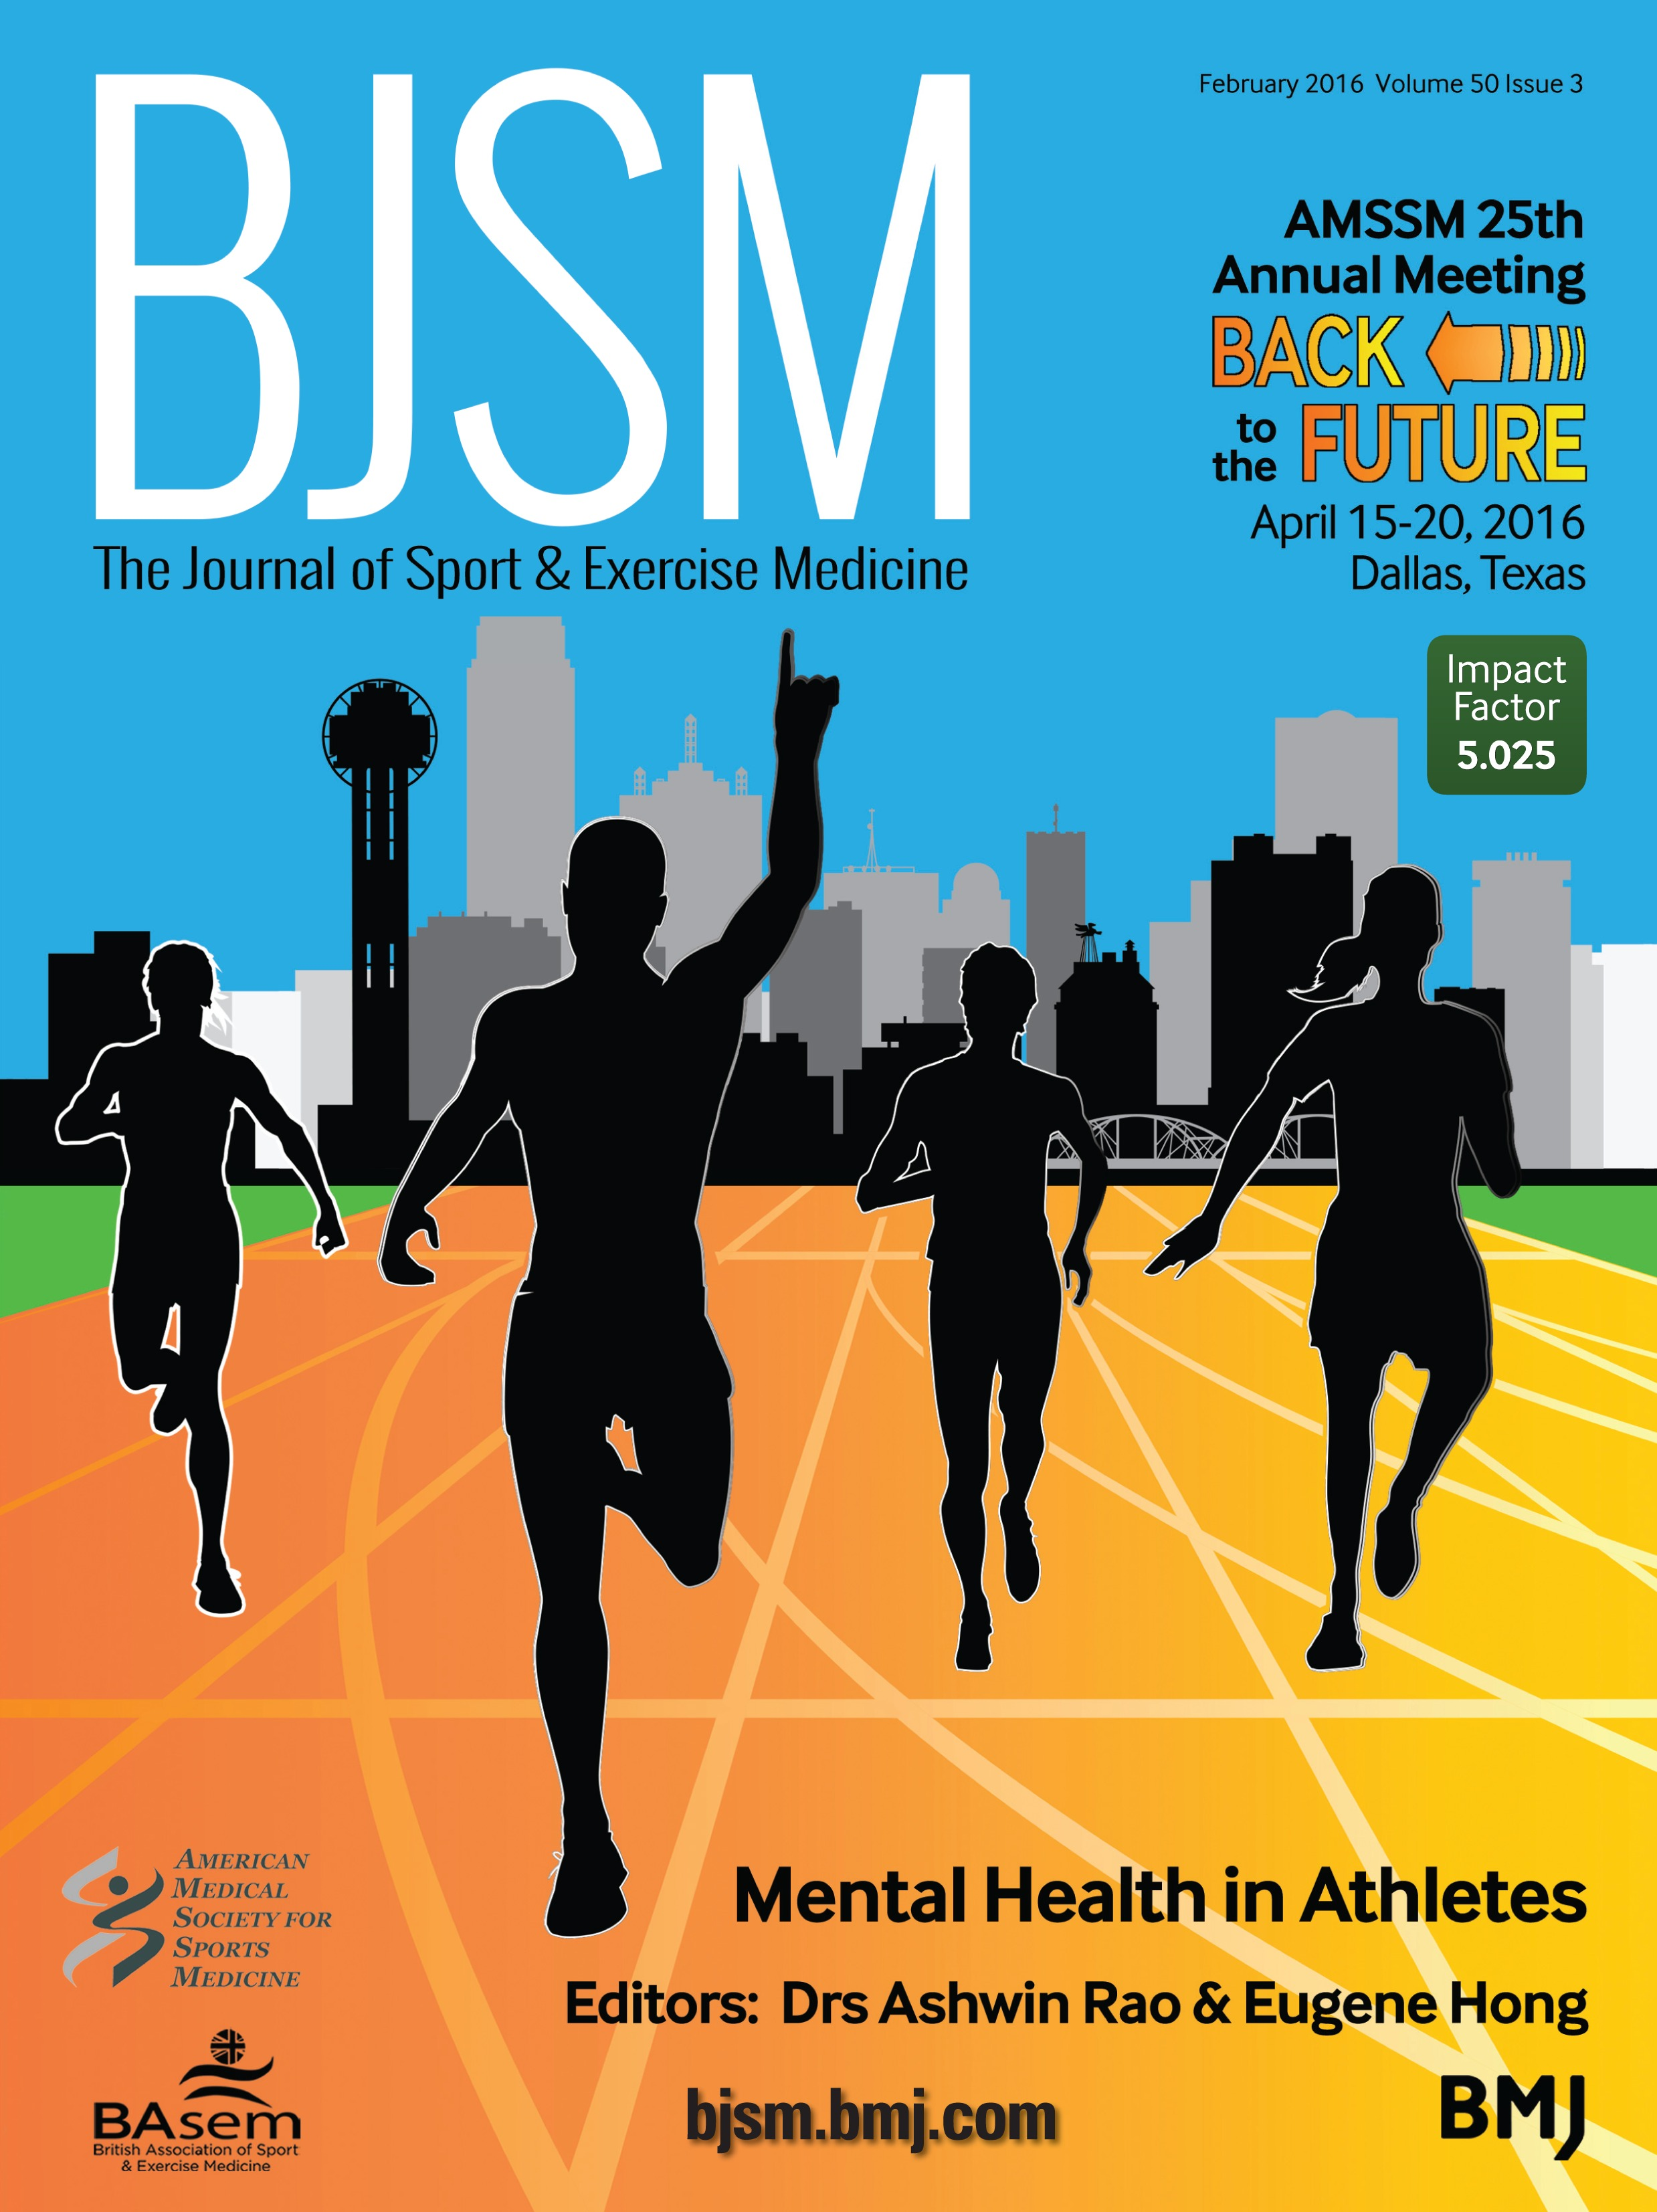 The Stigma Of Mental Health In Athletes Are Mental Toughness And